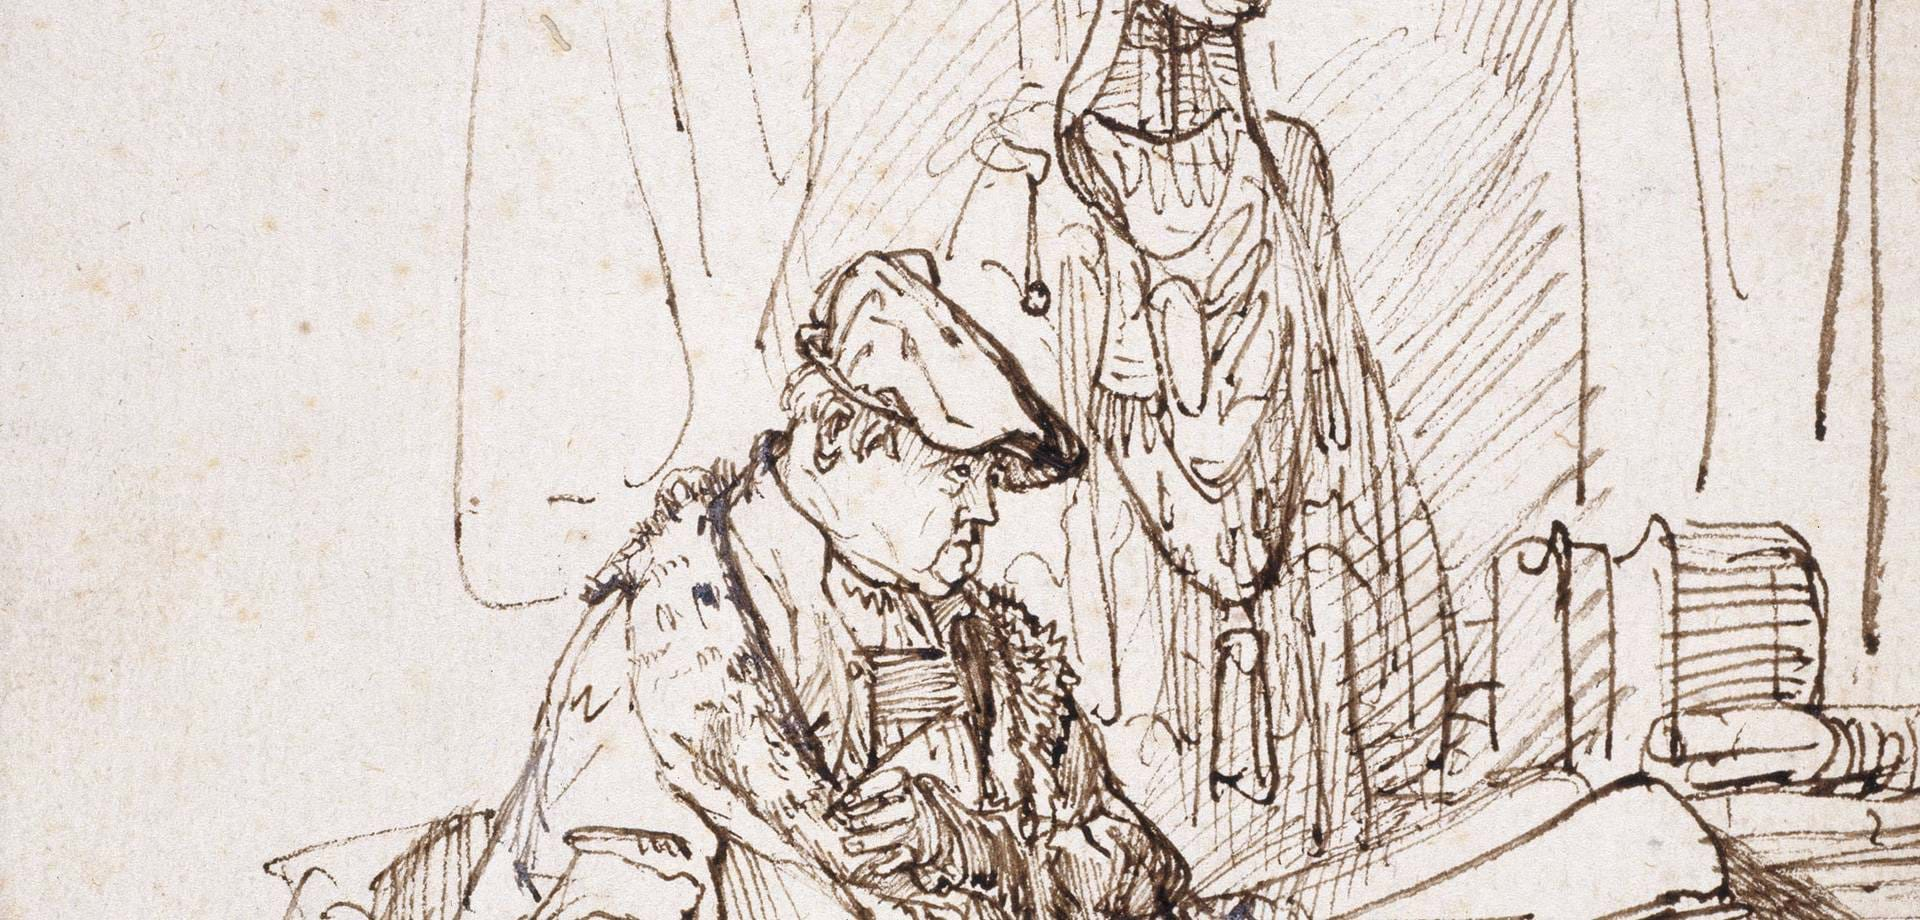 A Major New Exhibition of Chatsworth's World-Class Collection of Old Masters Drawings